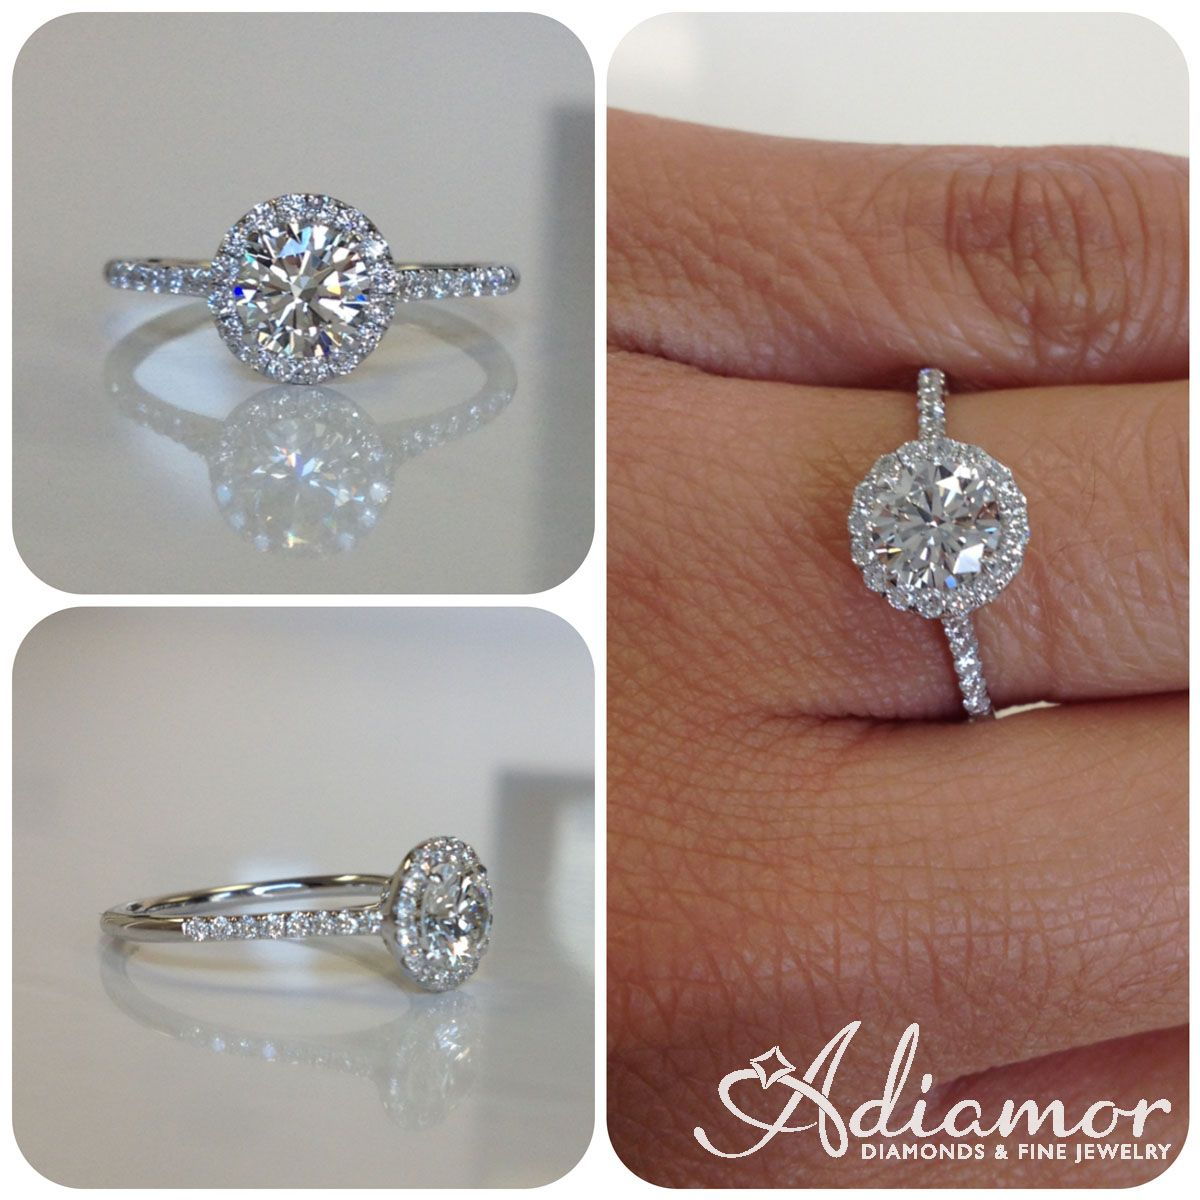 the i engagement close gorgeous carats finger allen size this pave of james regular style is believe pin rings french absolutely setting on up